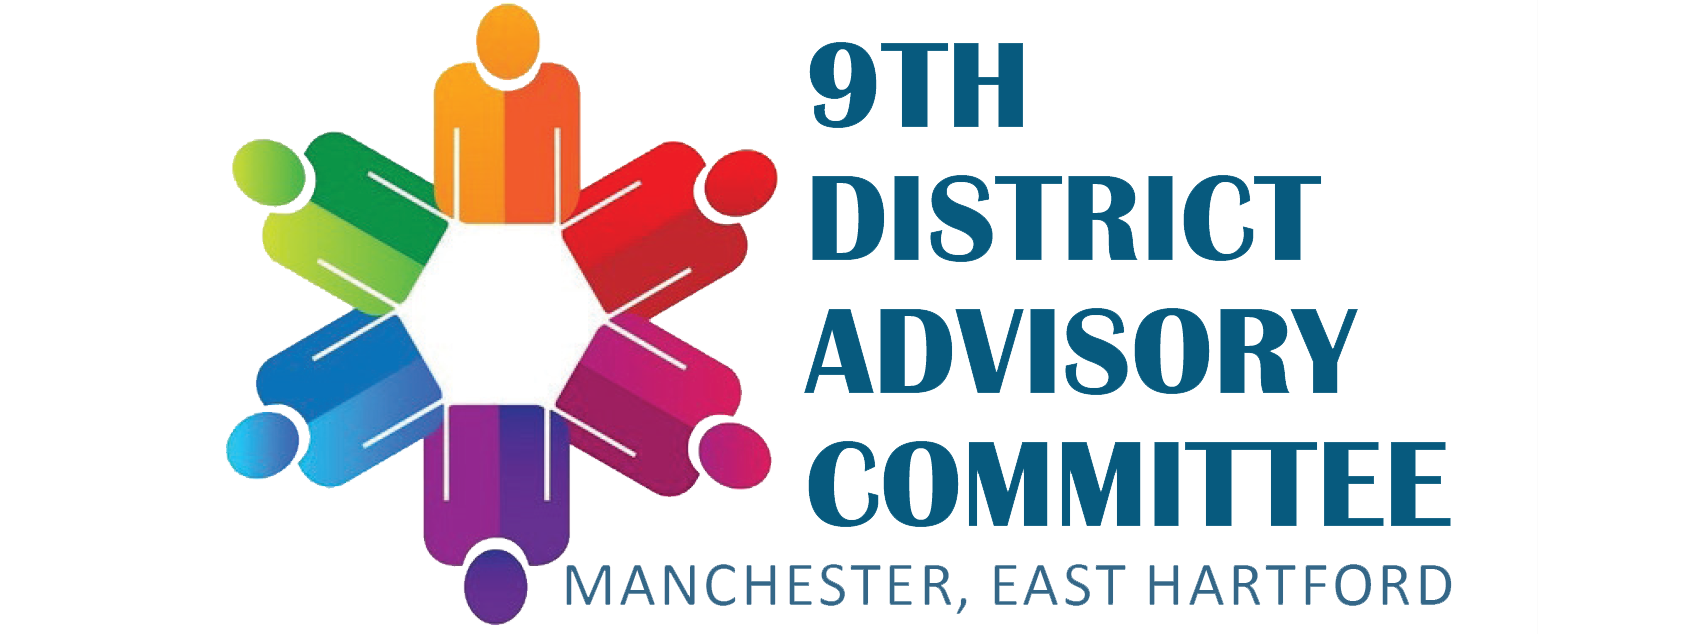 9th District Advisory Committee